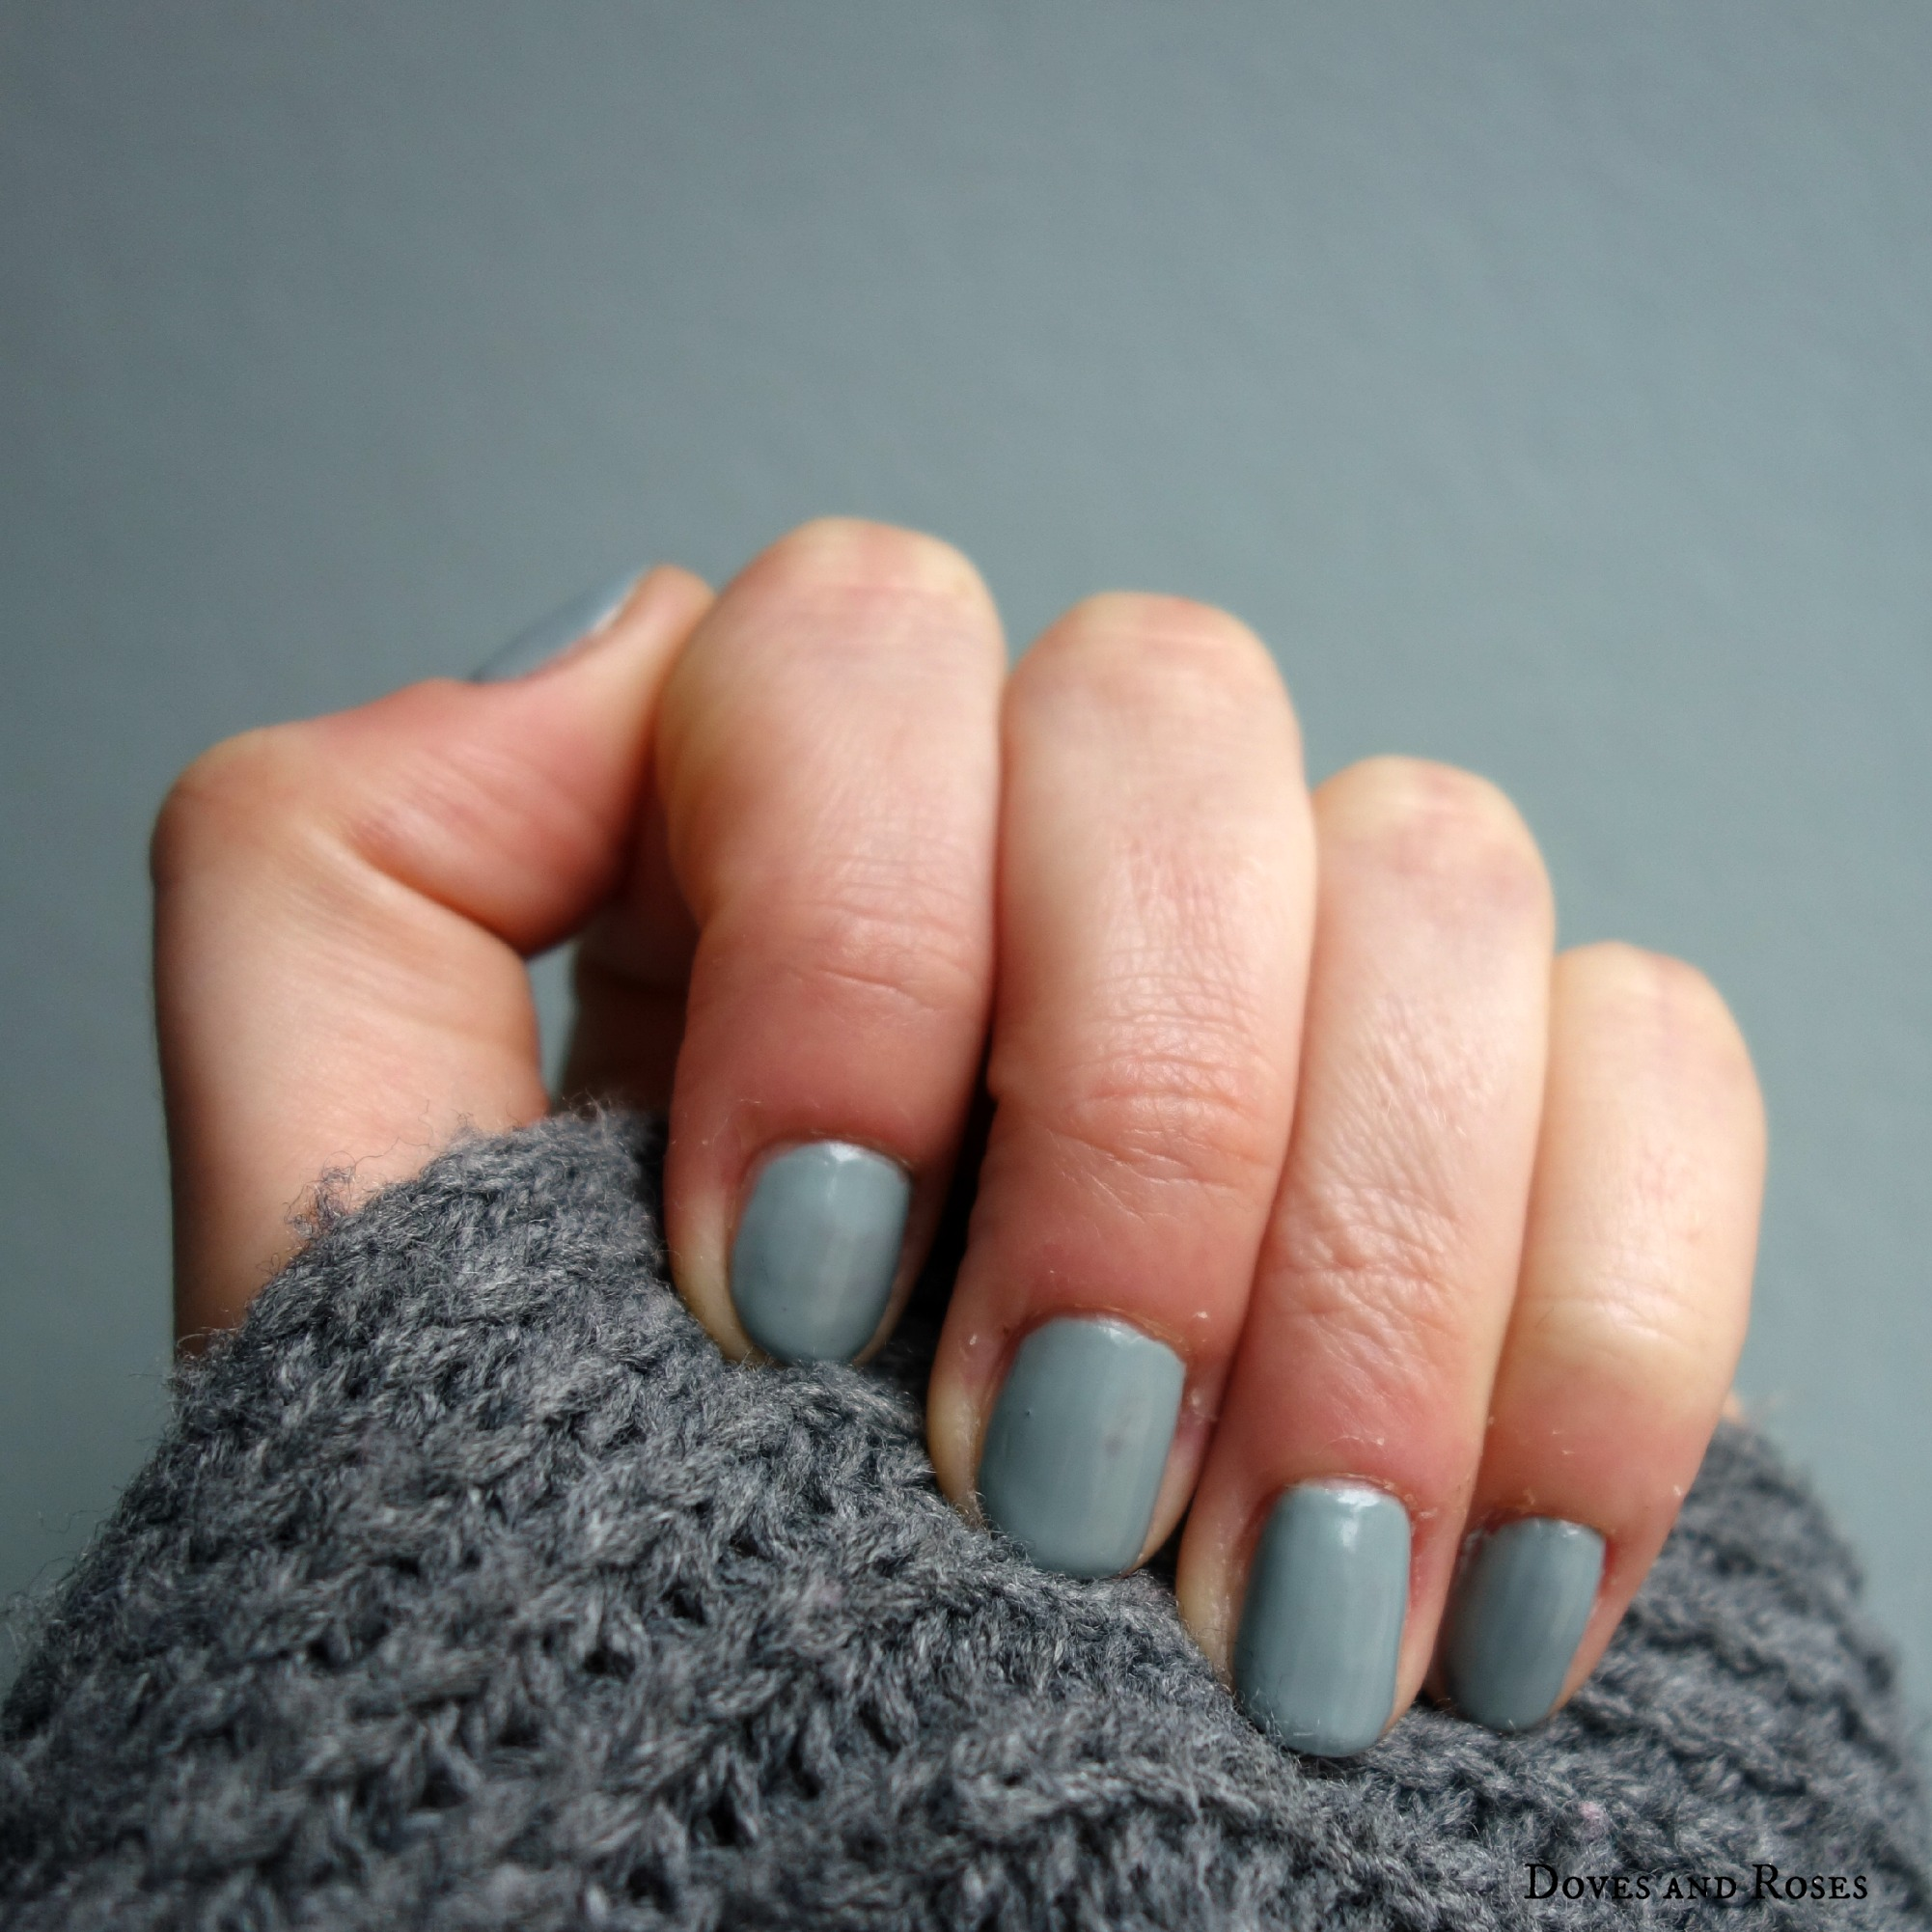 I Found the One: Essie Maximillian Strasse Her Nail Polish